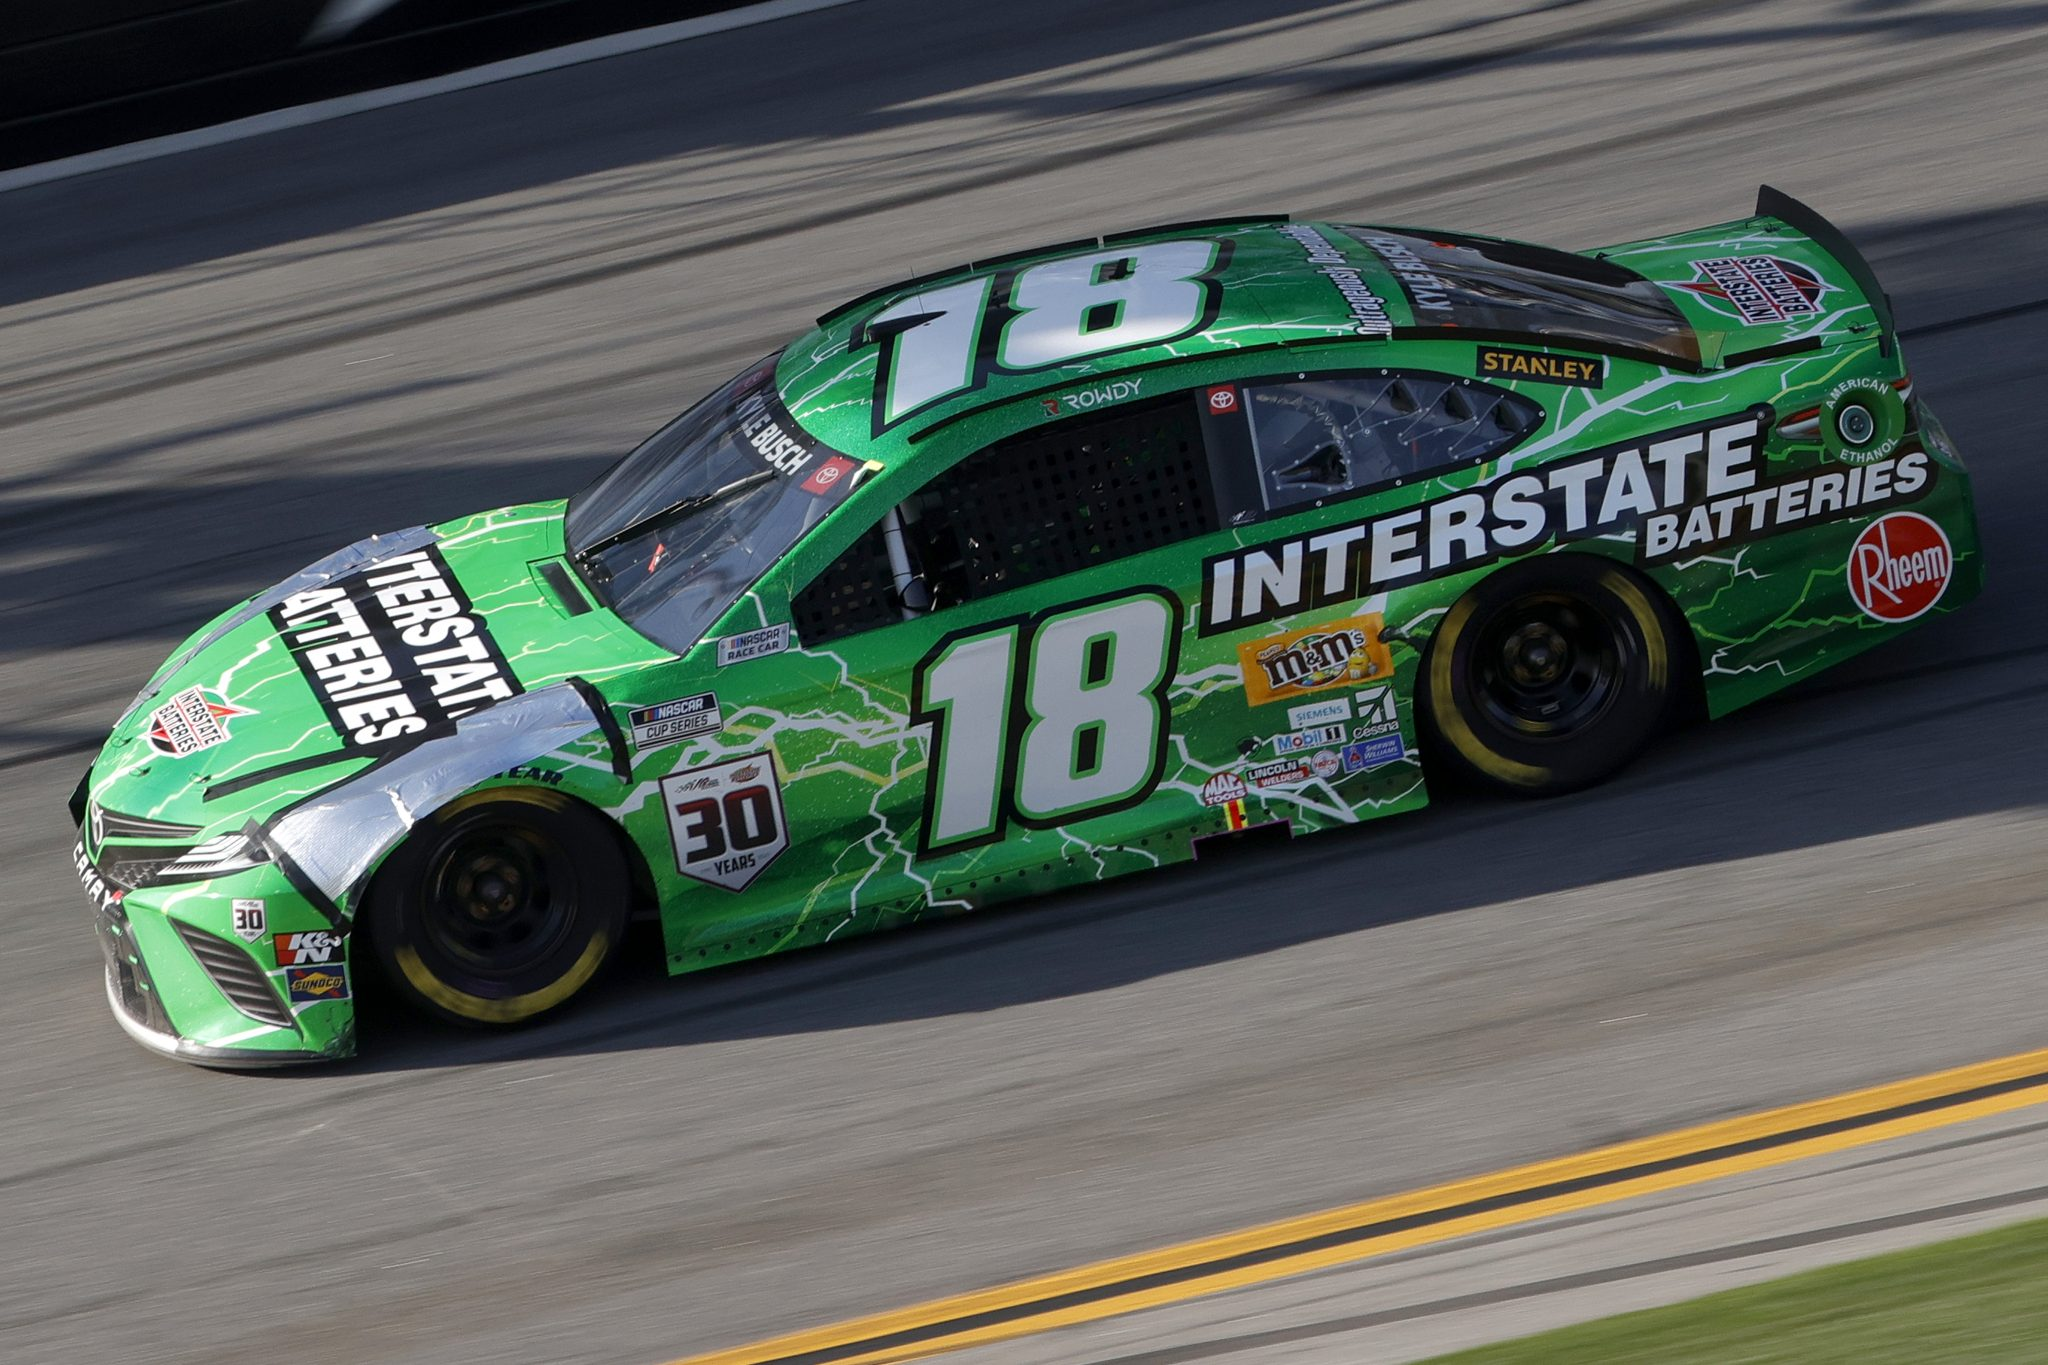 DAYTONA BEACH, FLORIDA - FEBRUARY 21: Kyle Busch, driver of the #18 Interstate Batteries Toyota, drives during the NASCAR Cup Series O'Reilly Auto Parts 253 at Daytona International Speedway on February 21, 2021 in Daytona Beach, Florida. (Photo by Chris Graythen/Getty Images) | Getty Images